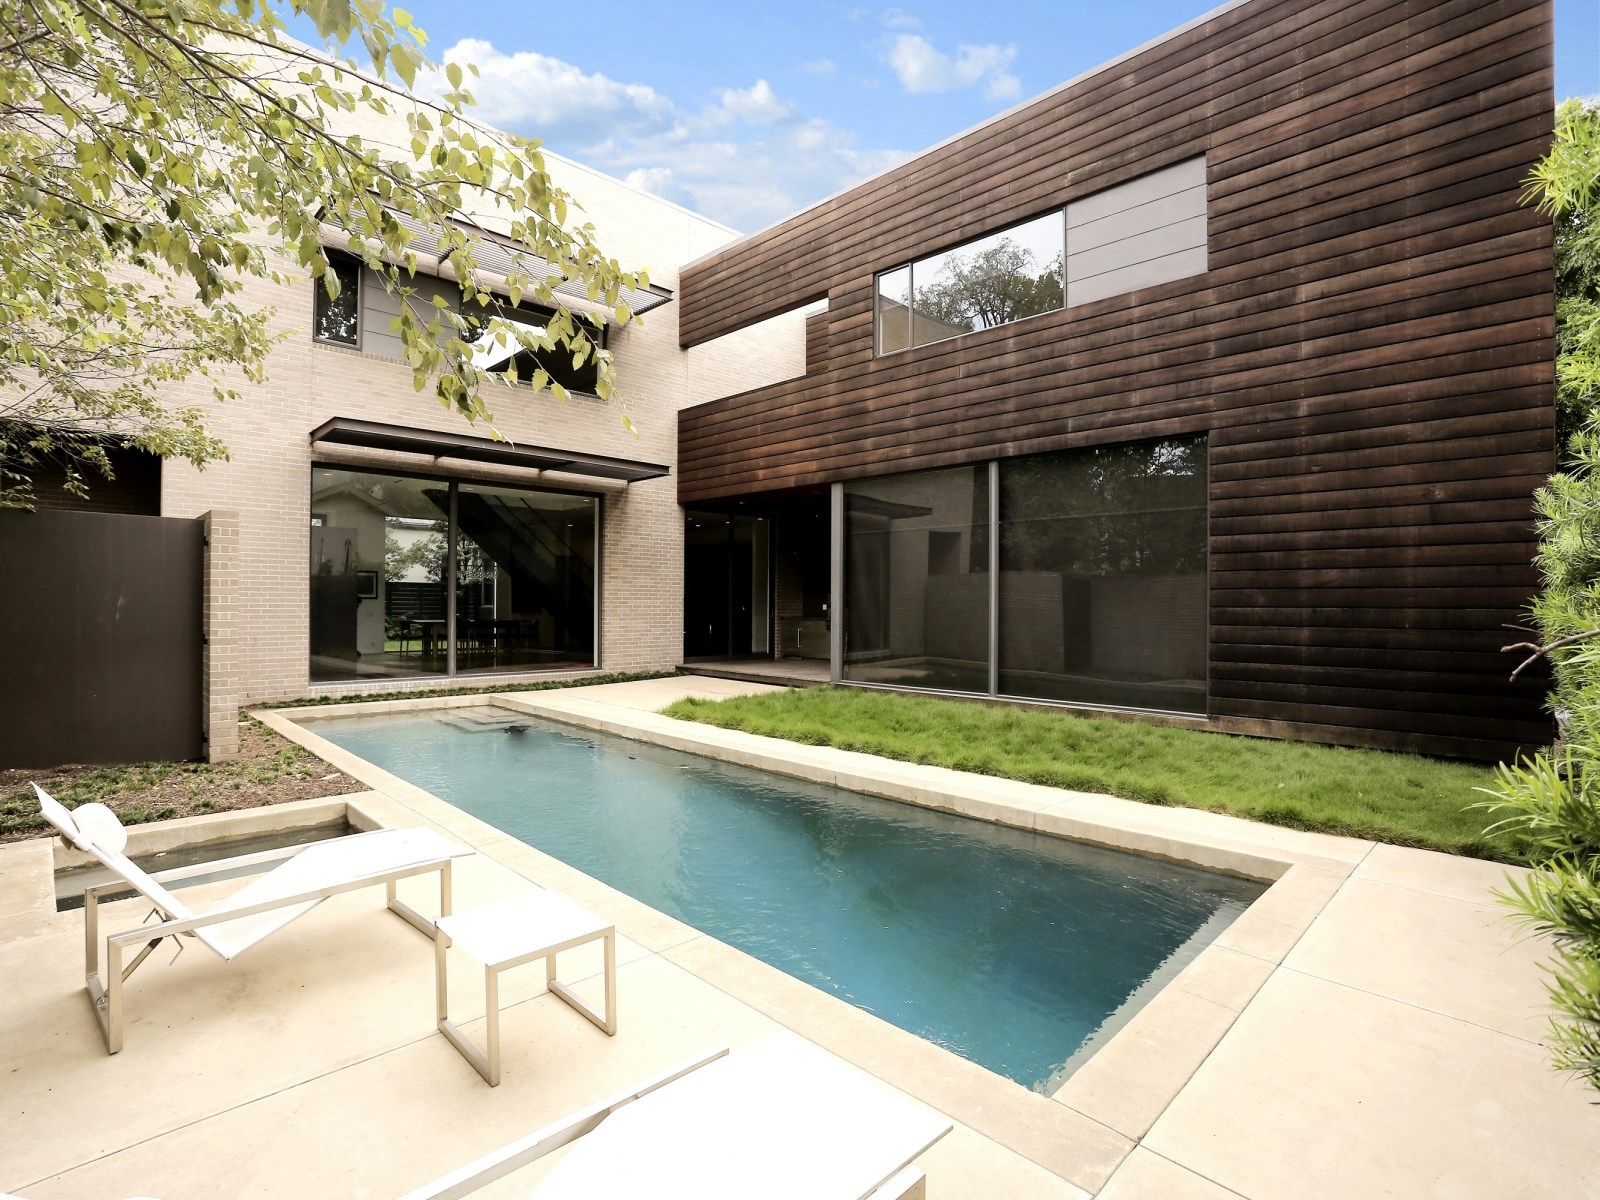 Brick Concrete And Wood Pool Deck - A home with formidable architecture and a light interior